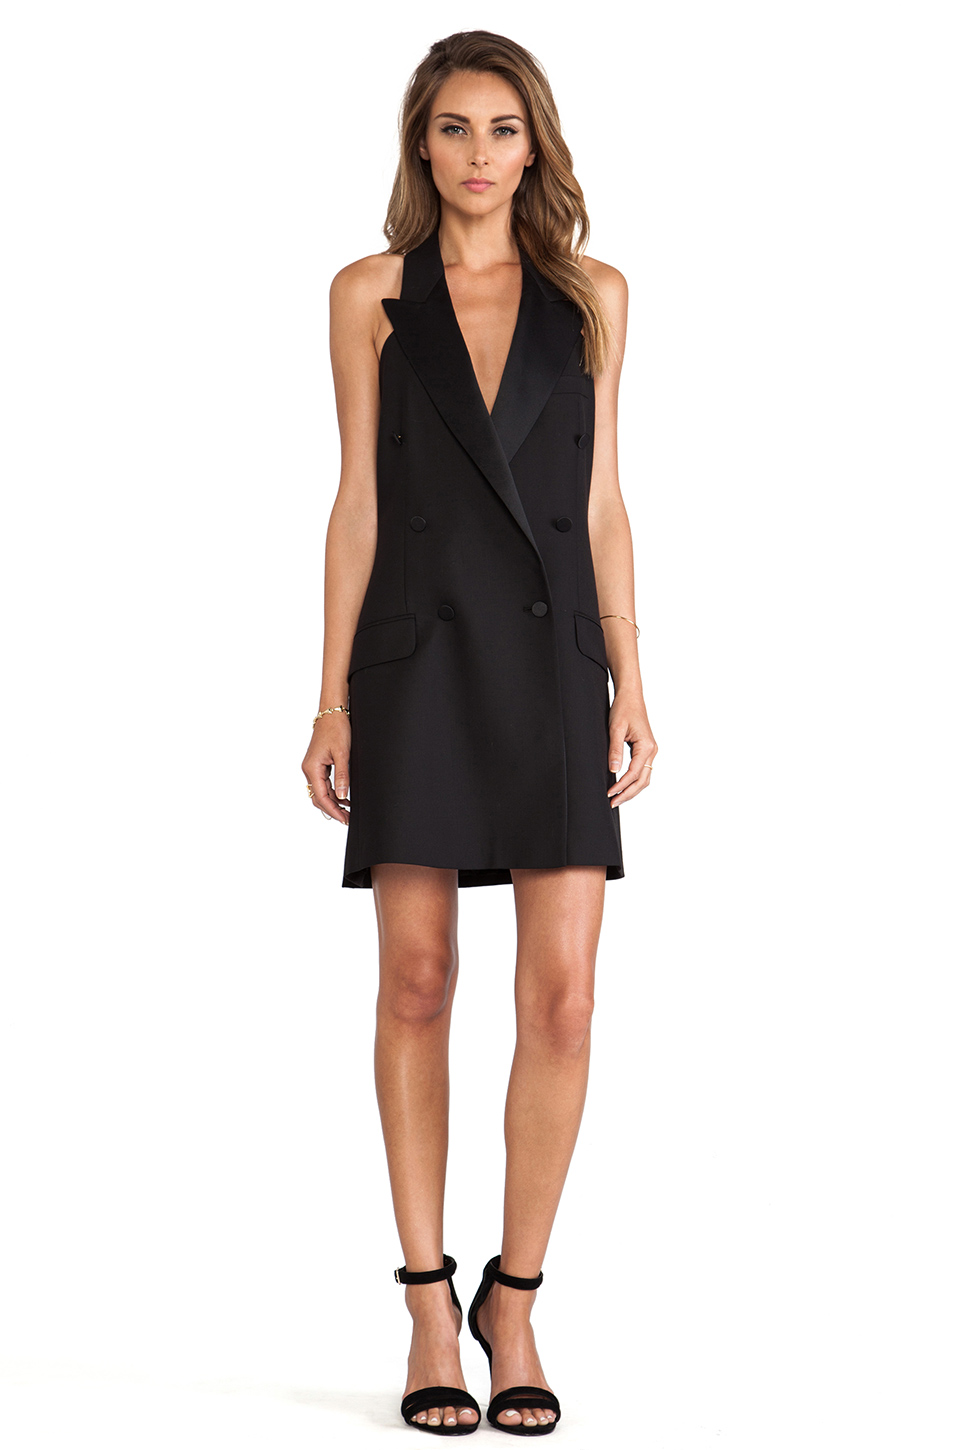 McQ Alexander McQueen Tuxedo Halter Dress in Velvet Black | REVOLVE